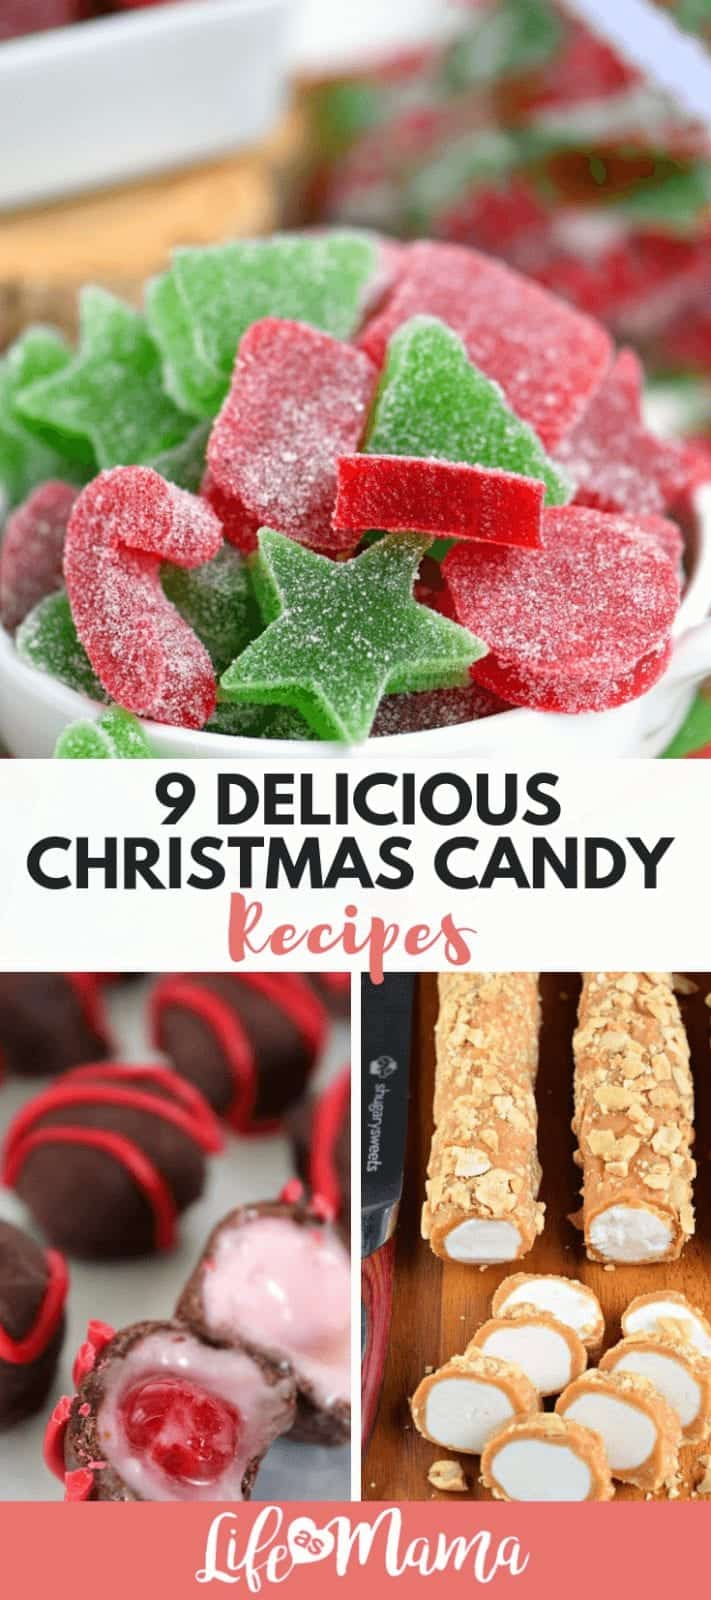 9 Delicious Christmas Candy Recipes